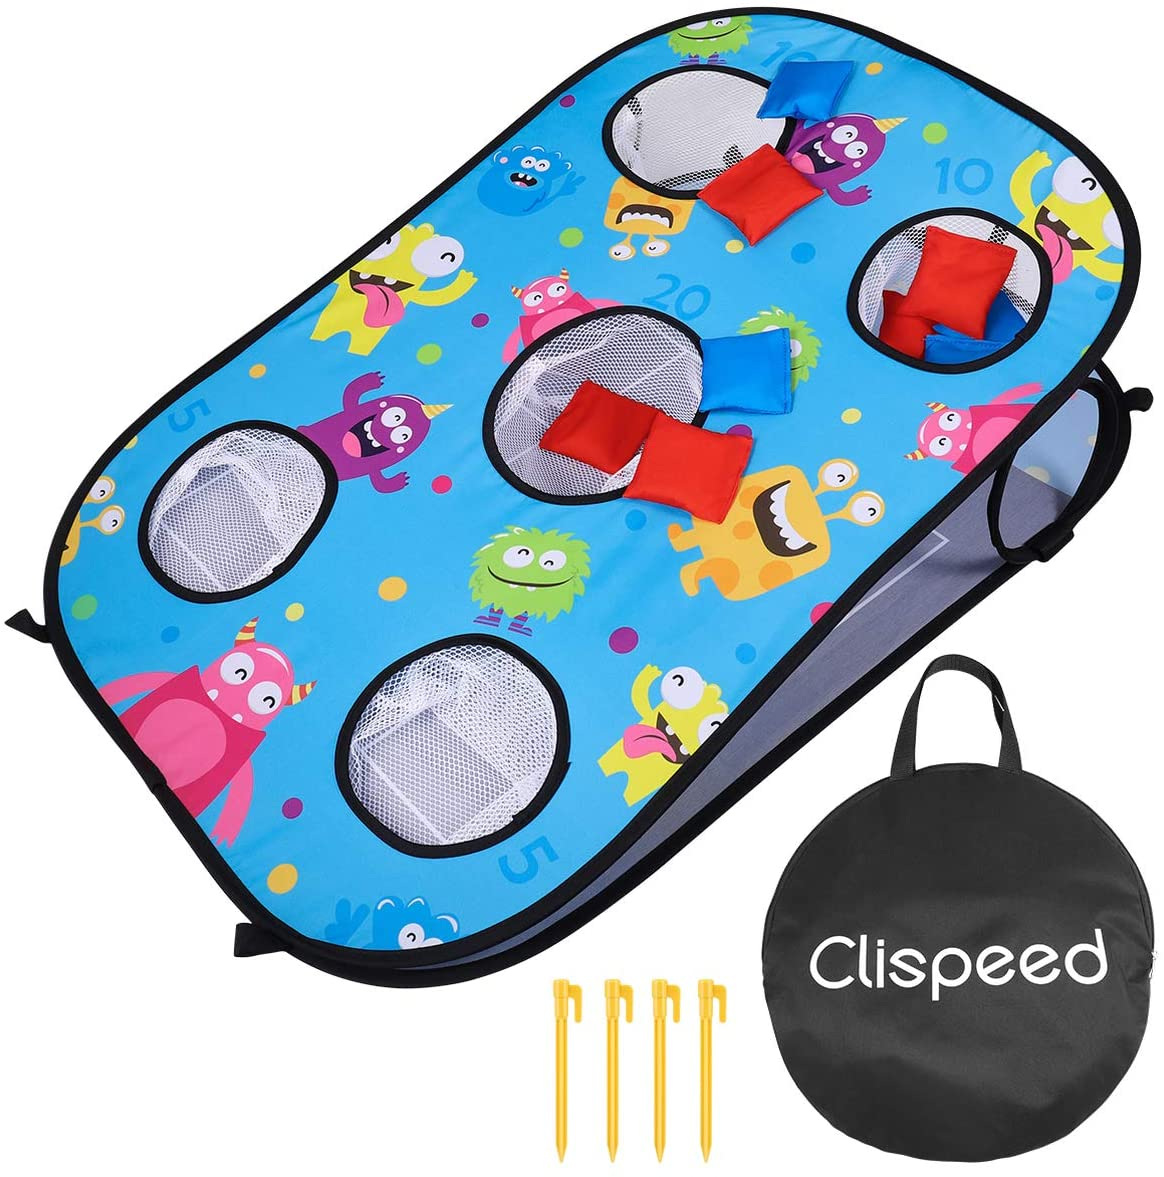 CLISPEED Collapsible Portable 5 Holes Cornhole Set Toss Game Tic Tac Toe Double Games Includes 10 Bean Bags (Bule, Single Board)